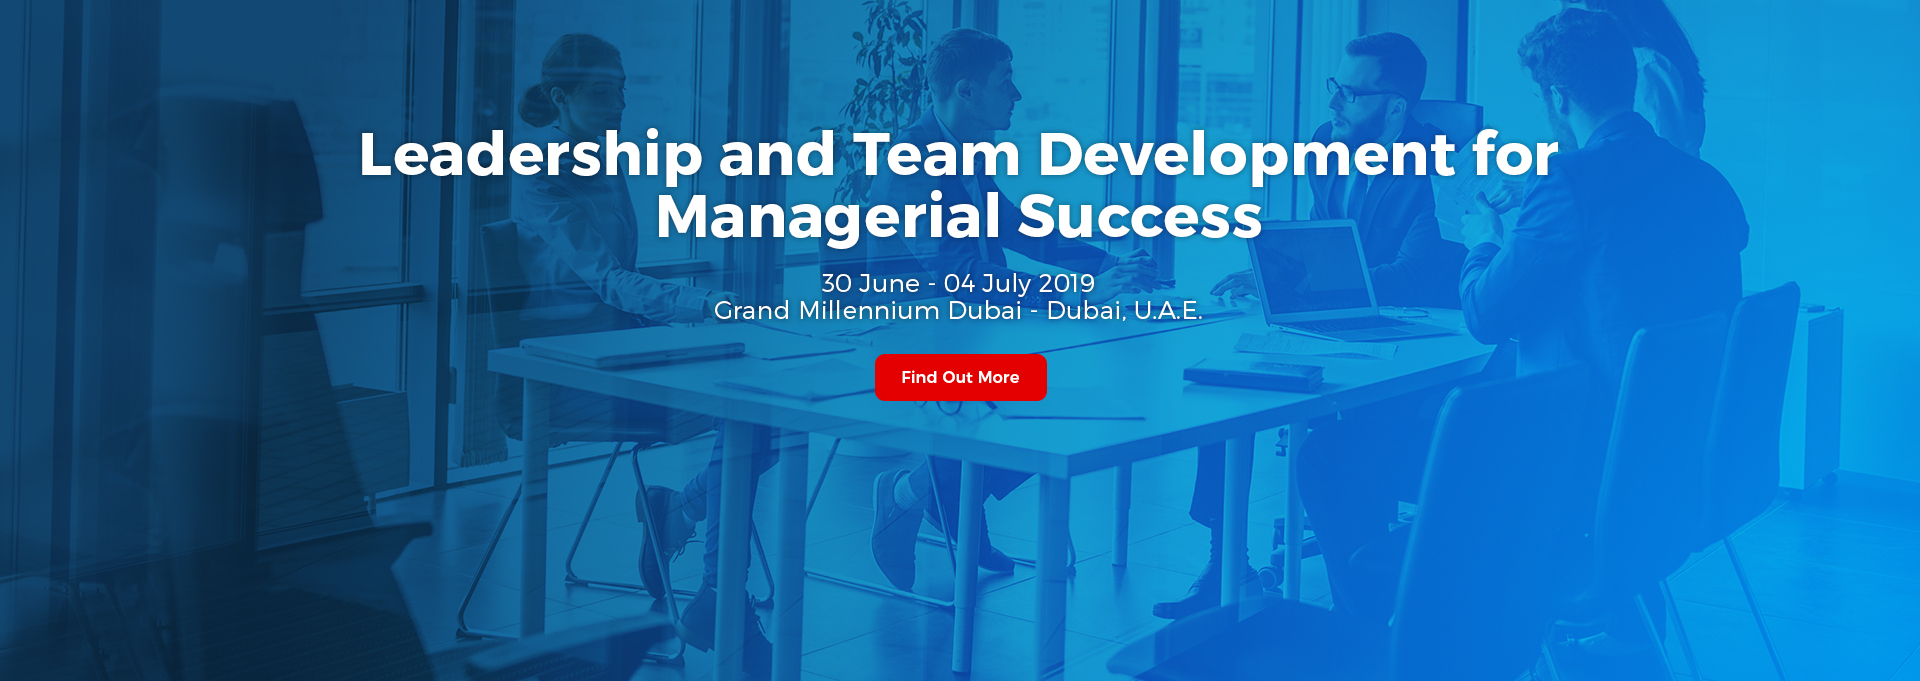 EuroMaTech Leadership and Team Development for Managerial Success